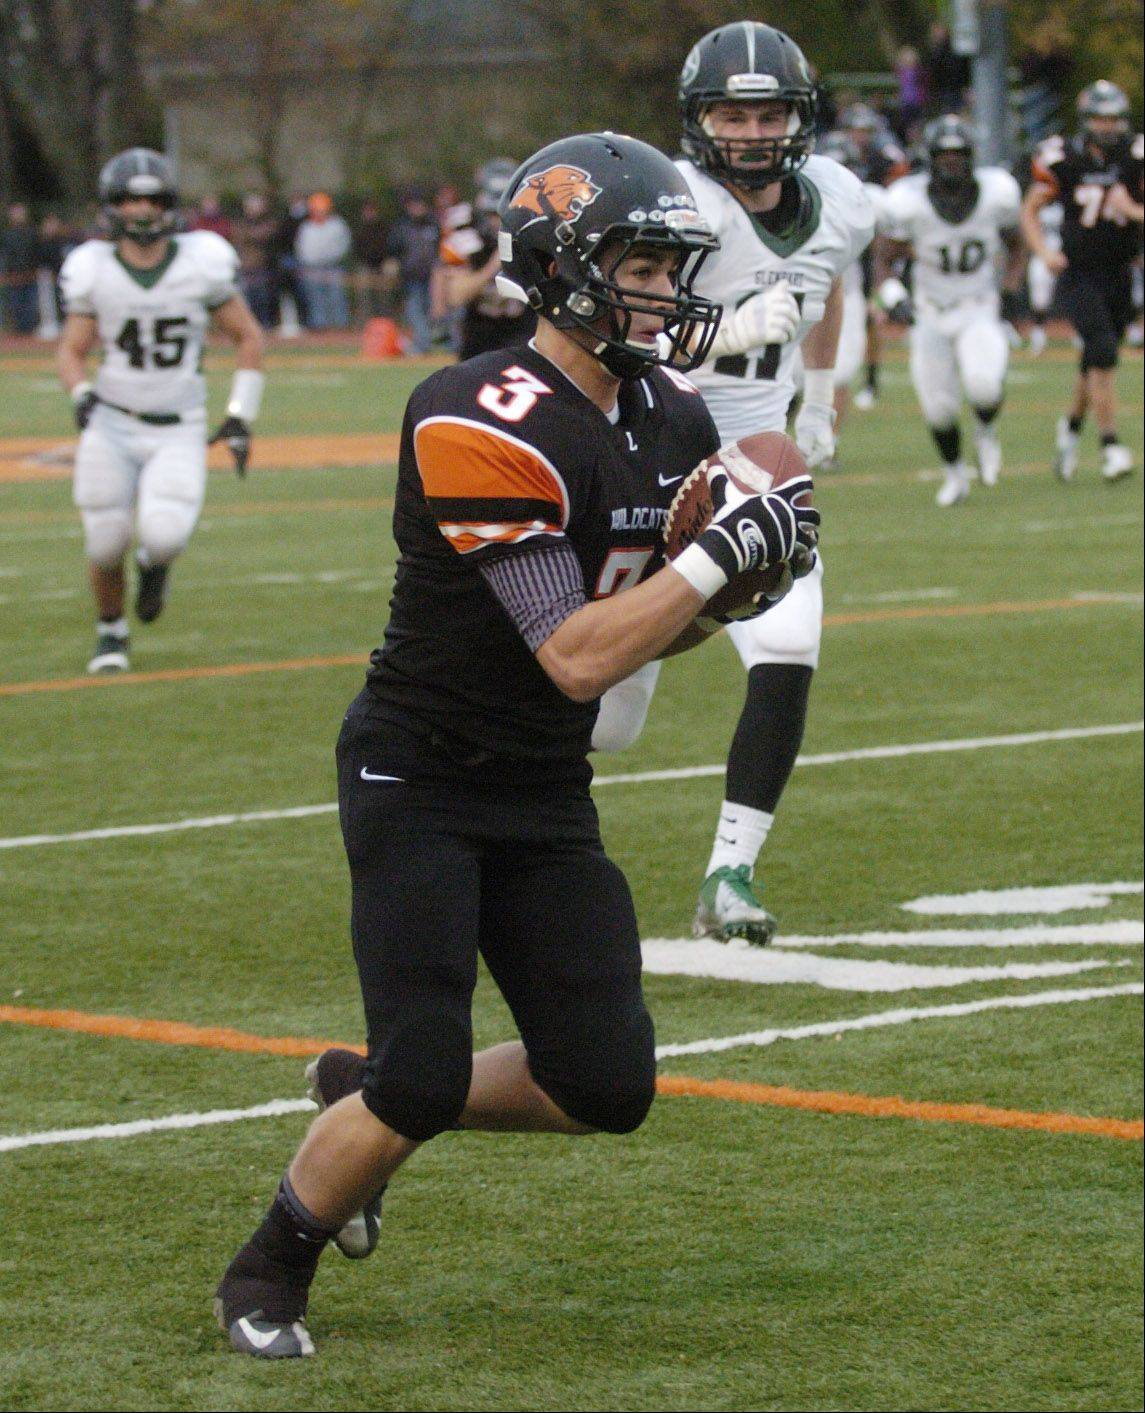 Libertyville's Justin Guarnaccio carries the ball for a touchdown on a pass play against Glenbard West Saturday.